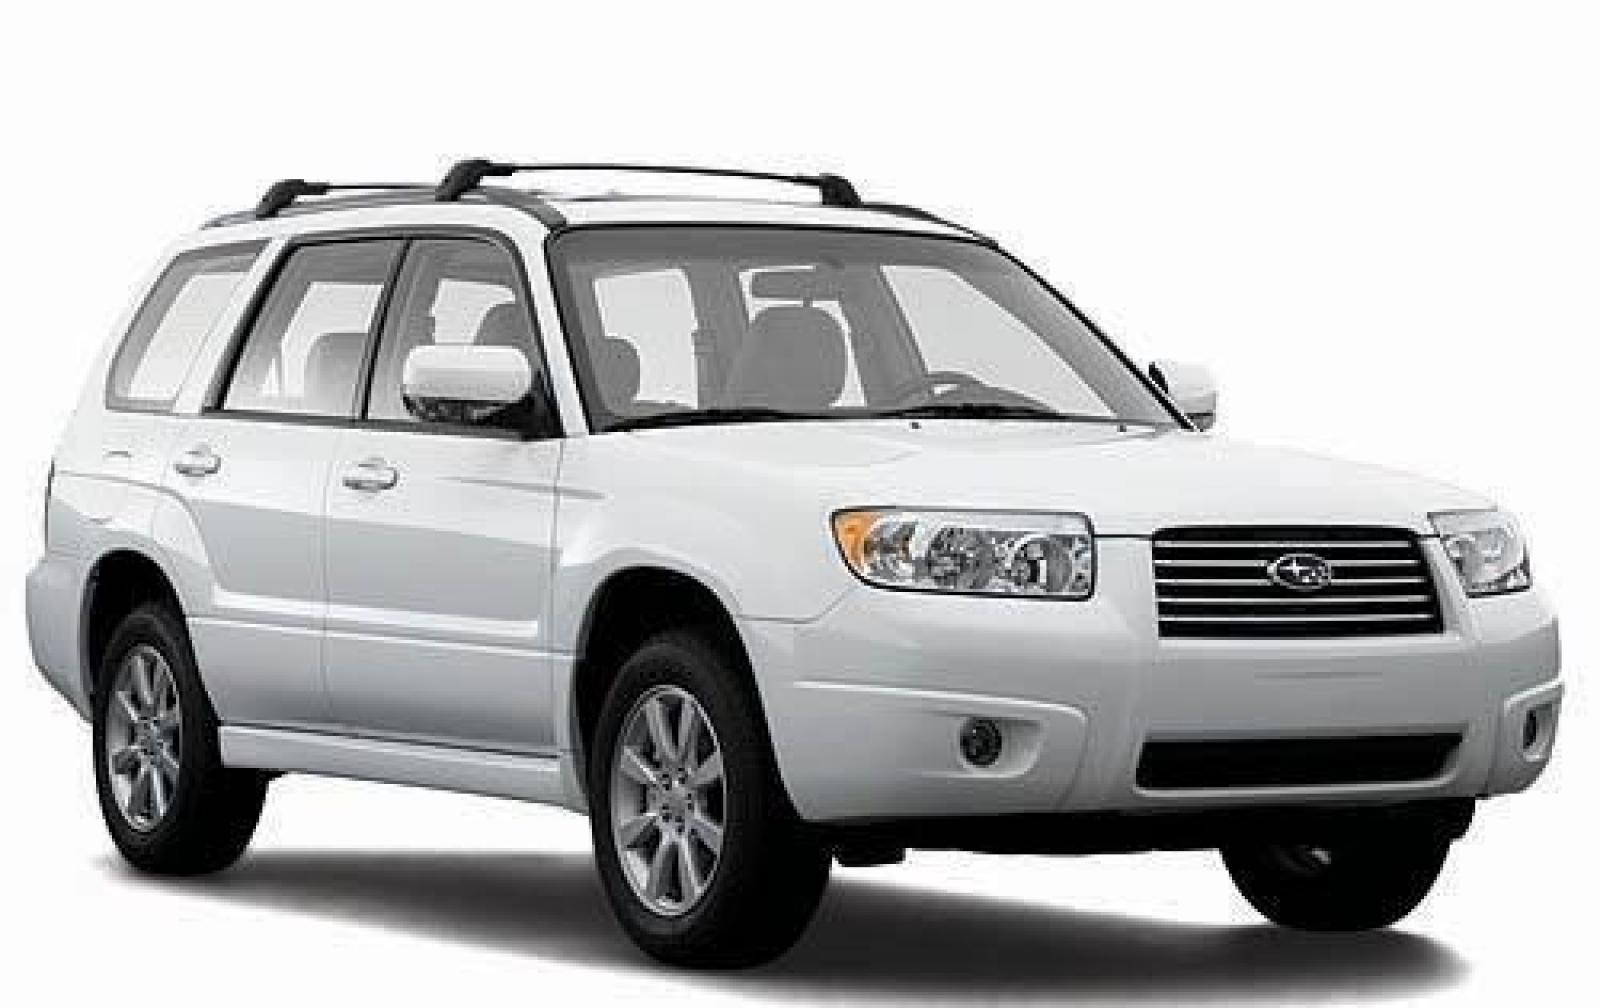 2008 subaru forester - information and photos - zombiedrive